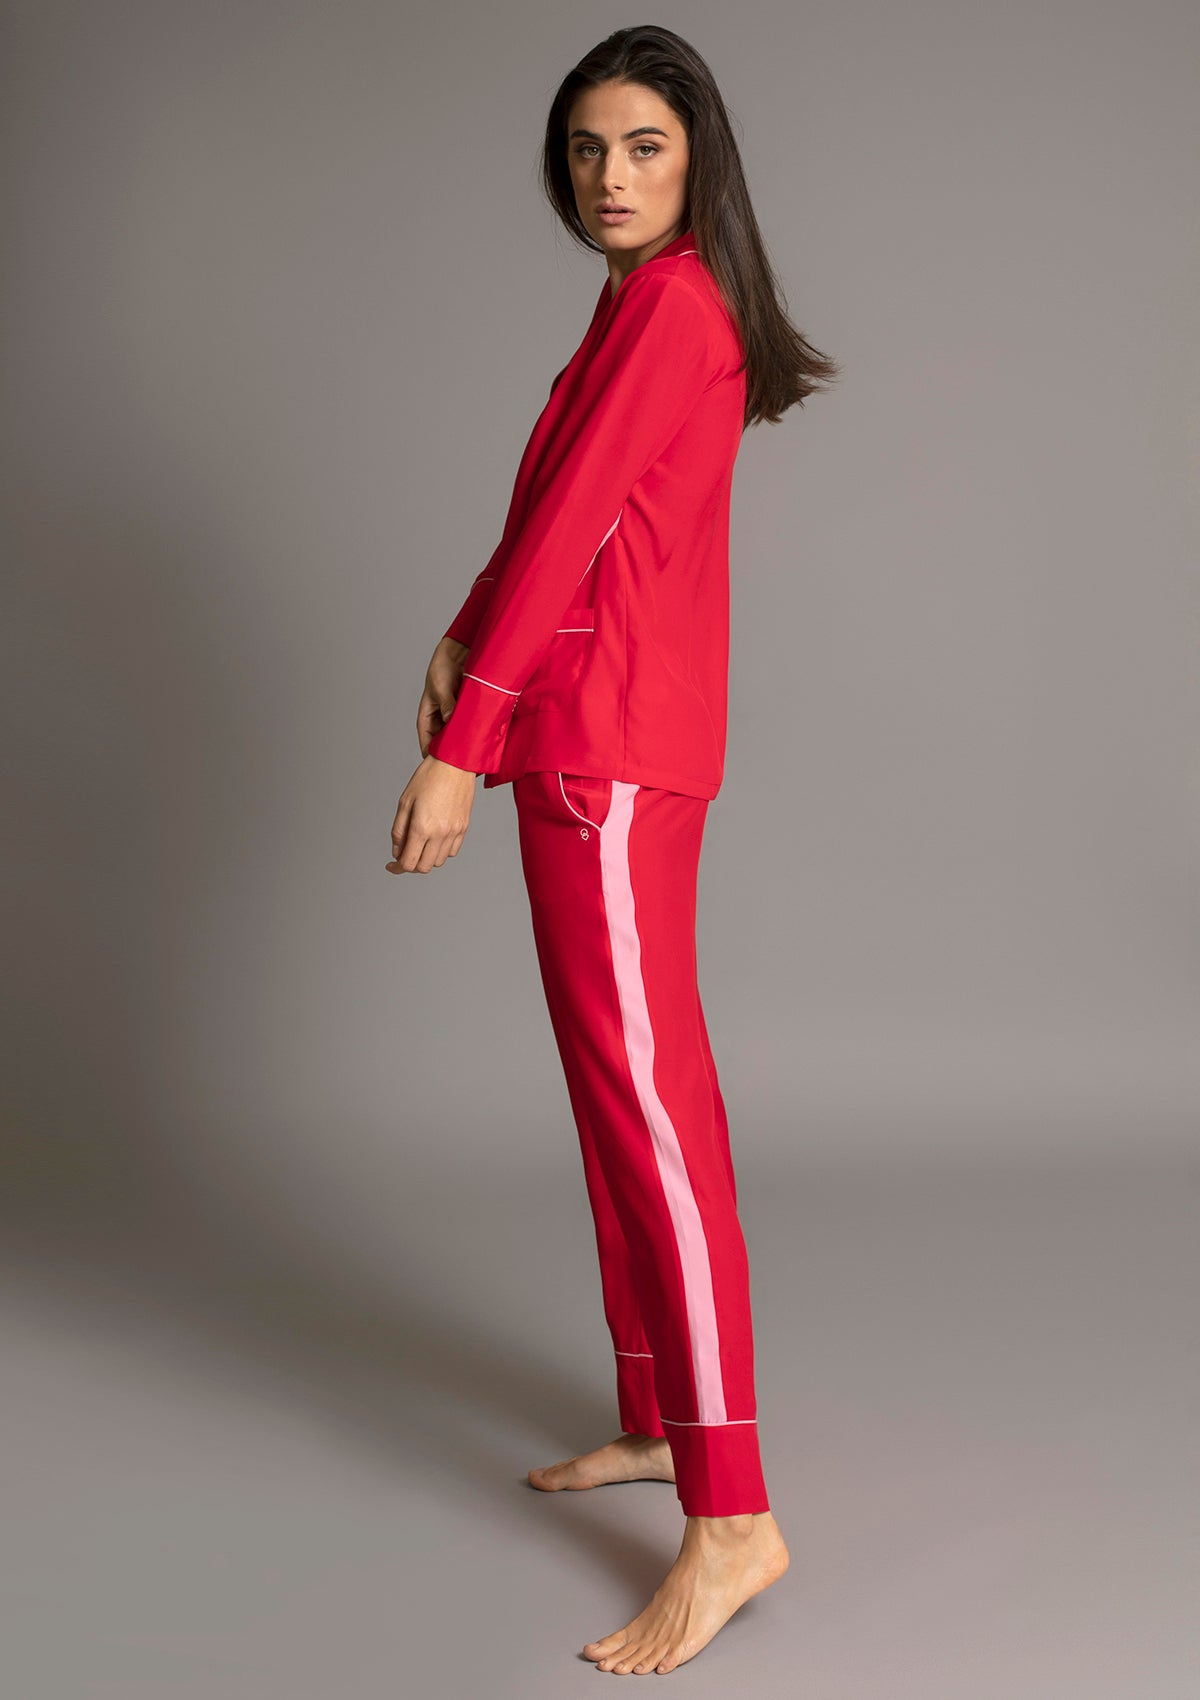 PALOMA PYJAMA SHIRT in ROUGE